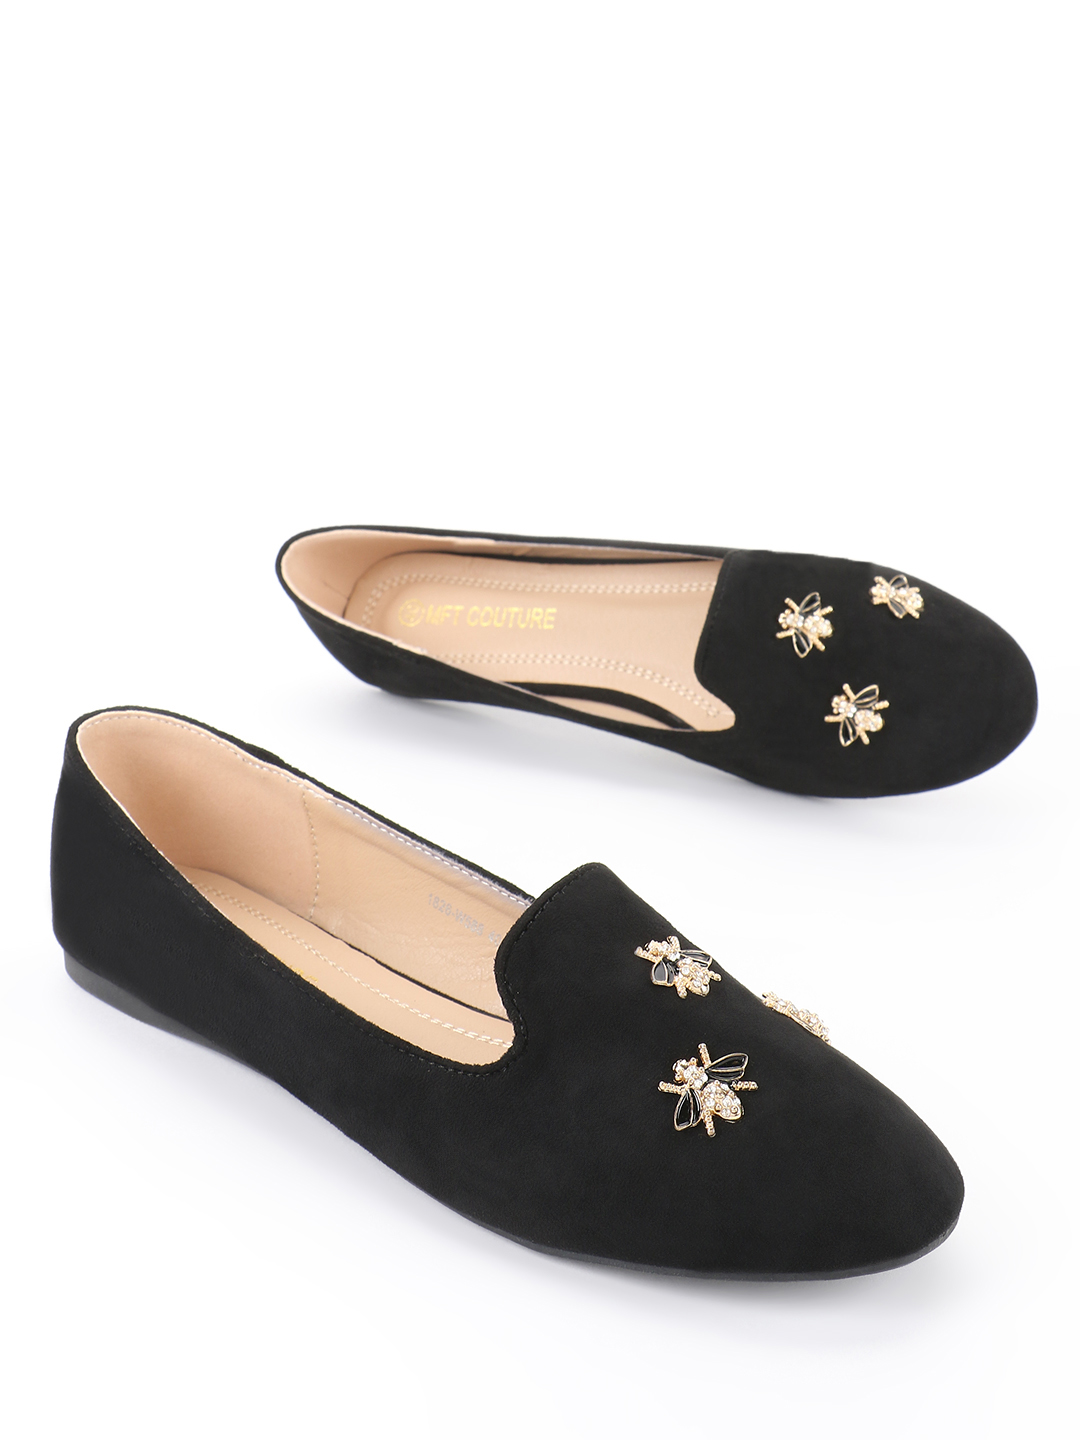 My Foot Couture Black Suede Bee Embellished Flat Shoes 1